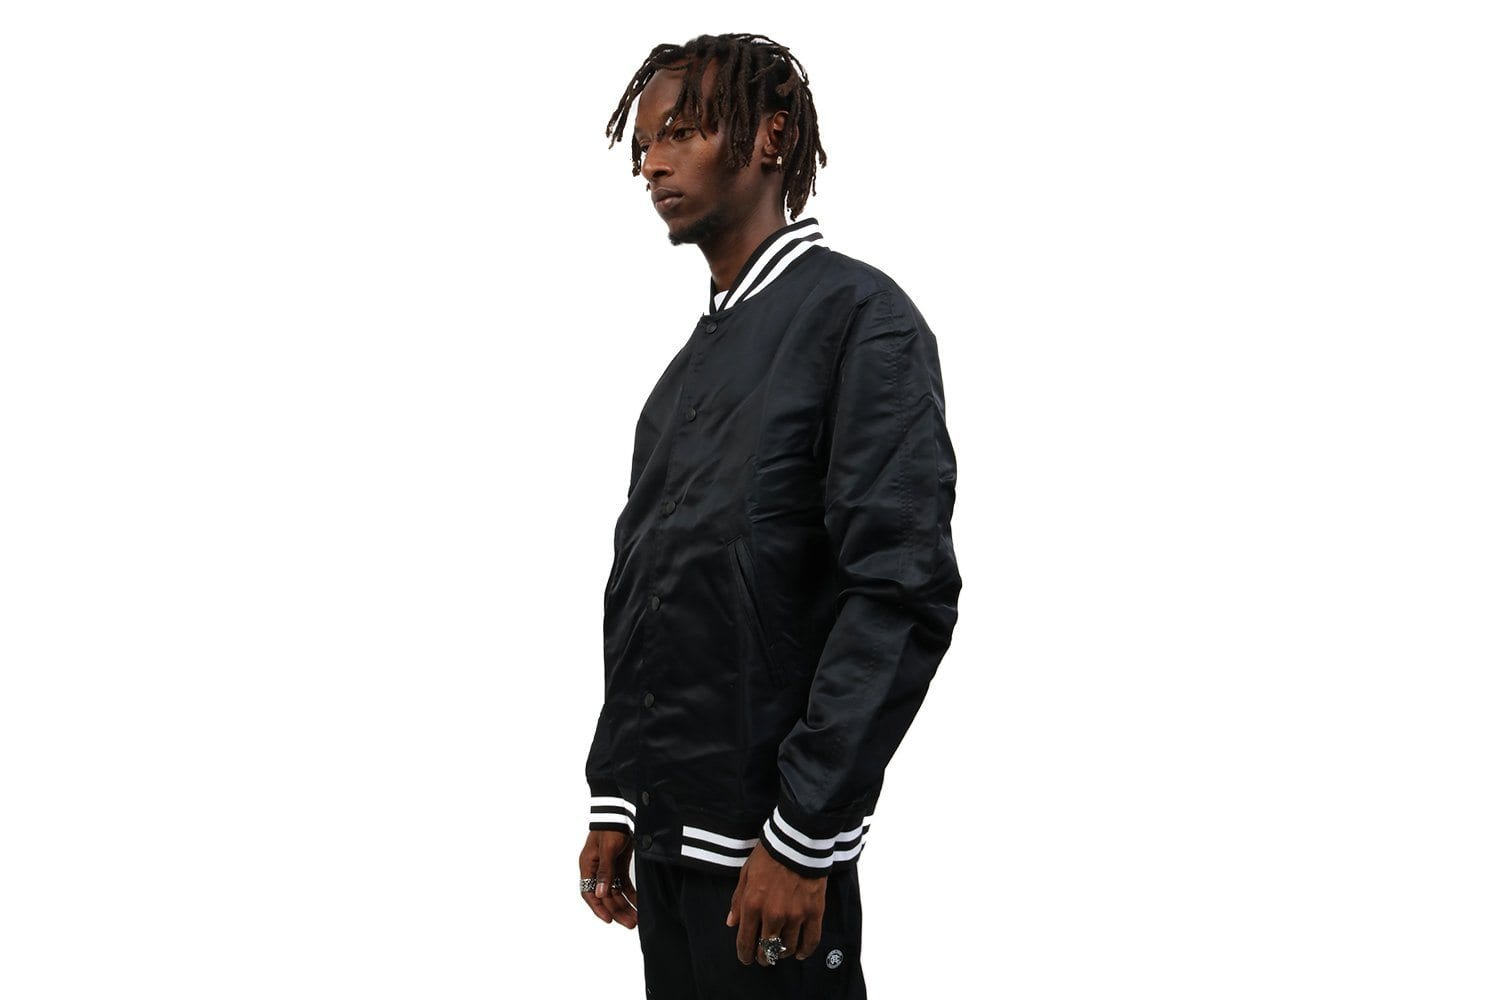 WOVEN LT WT SATIN EMBROIDERED STADIUM JACKET-RC-4101 MENS SOFTGOODS REIGNING CHAMP